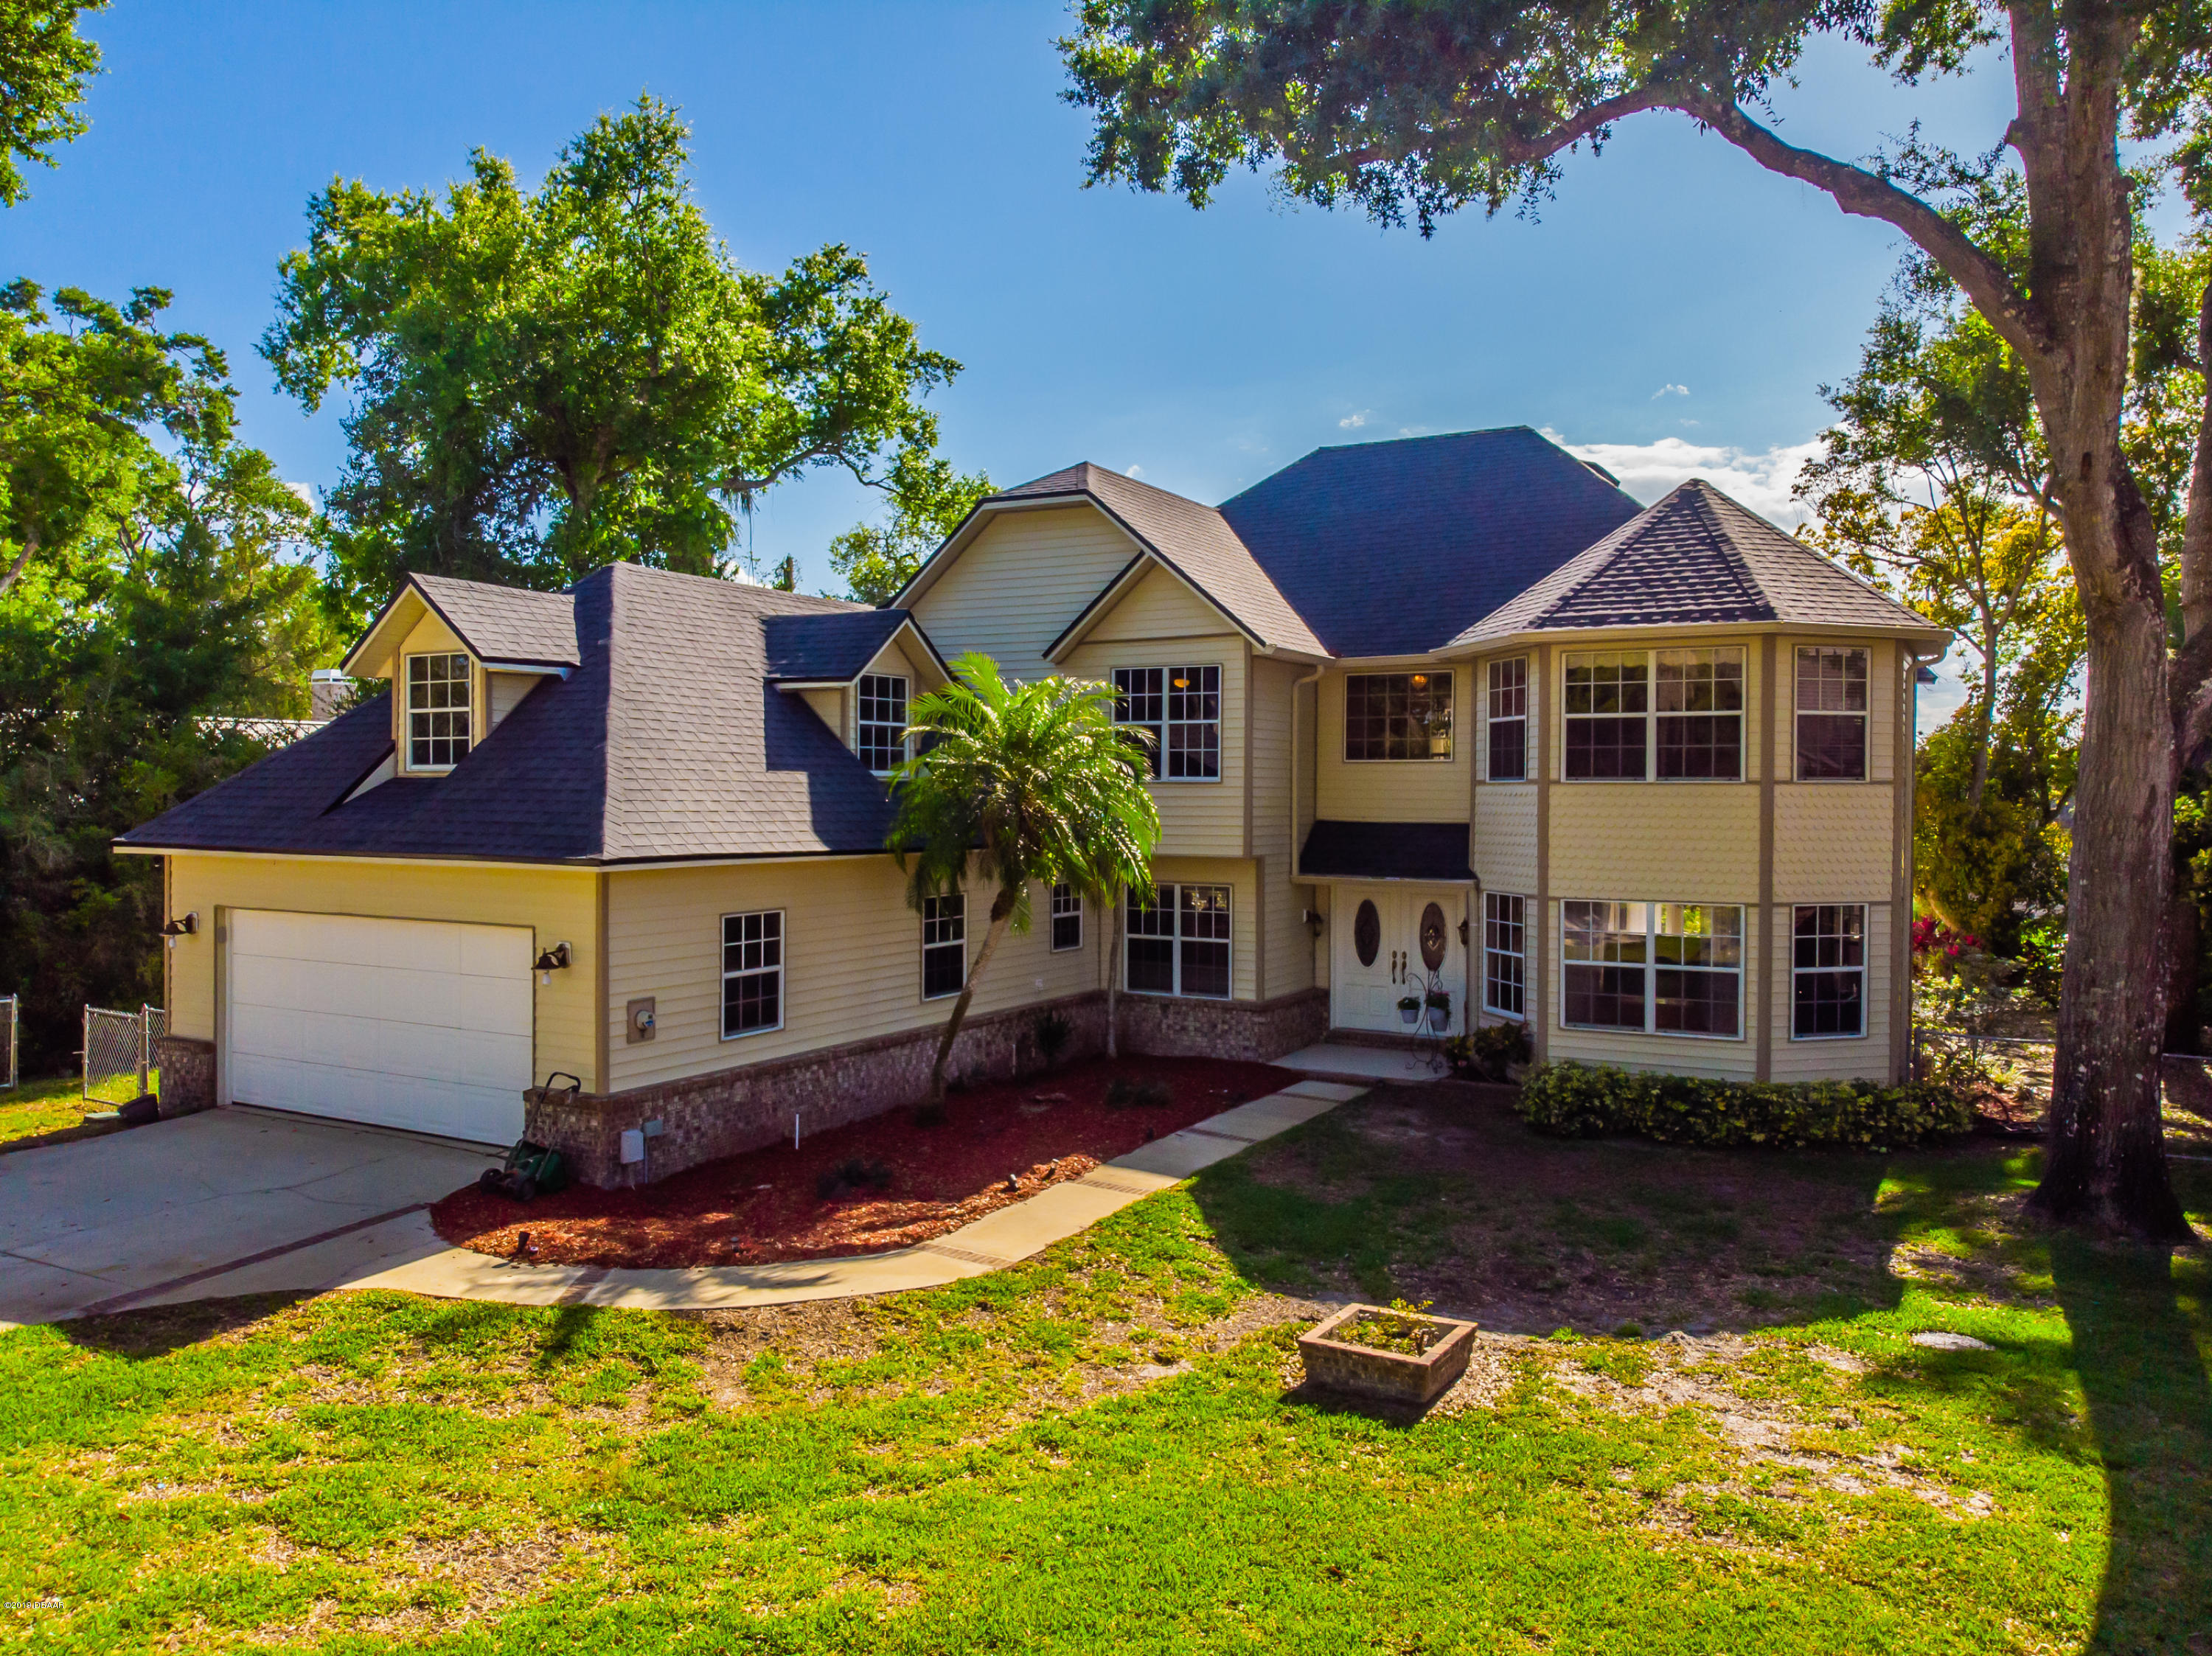 891 Hewitt Drive, Ponce Inlet, Florida